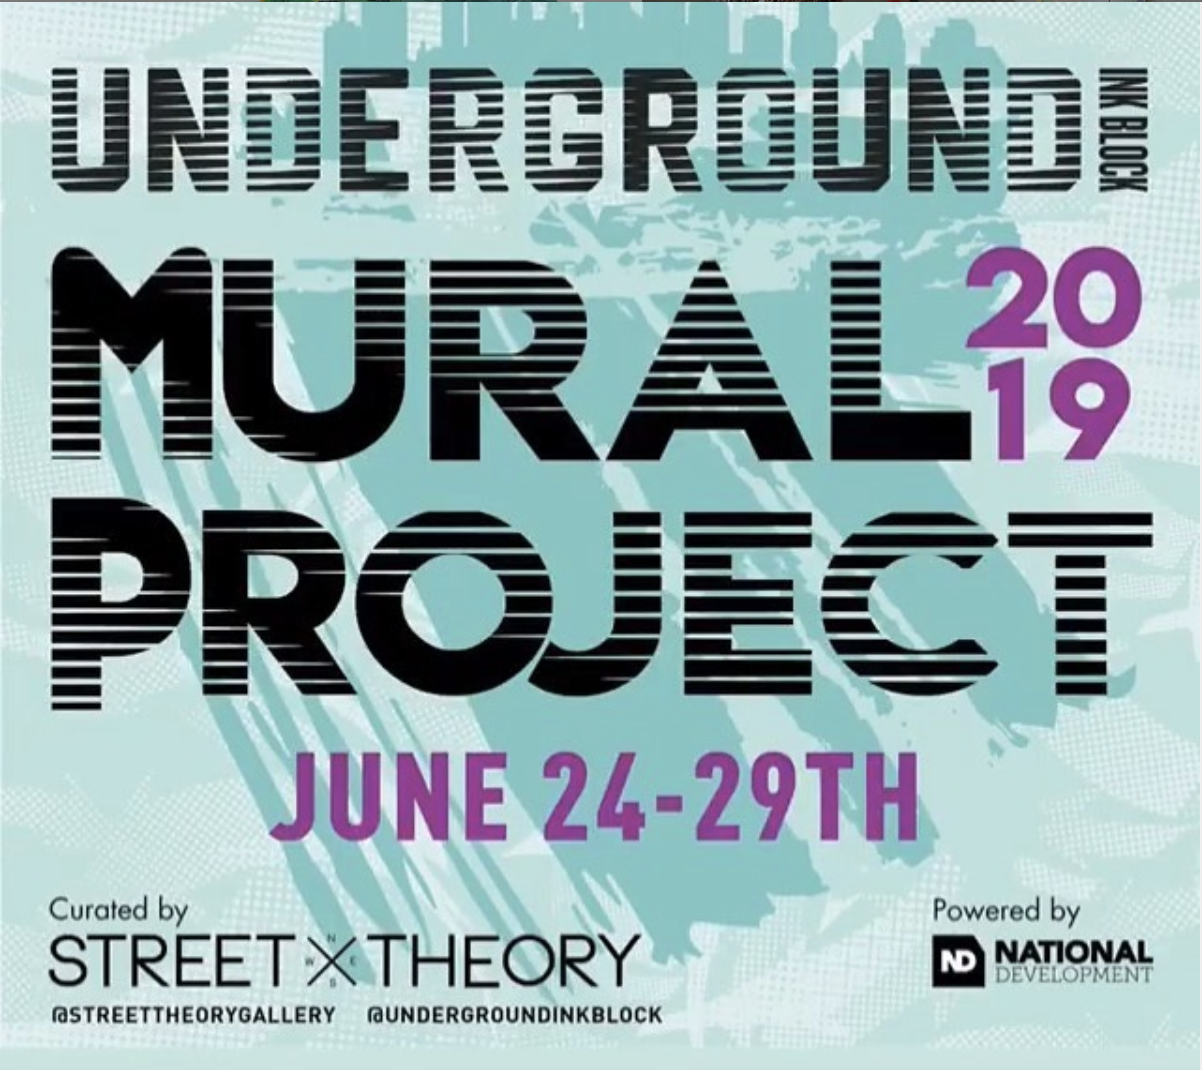 Underground Mural Project June 24-29 curated by Street Theory Gallery at InkBlock, Boston .